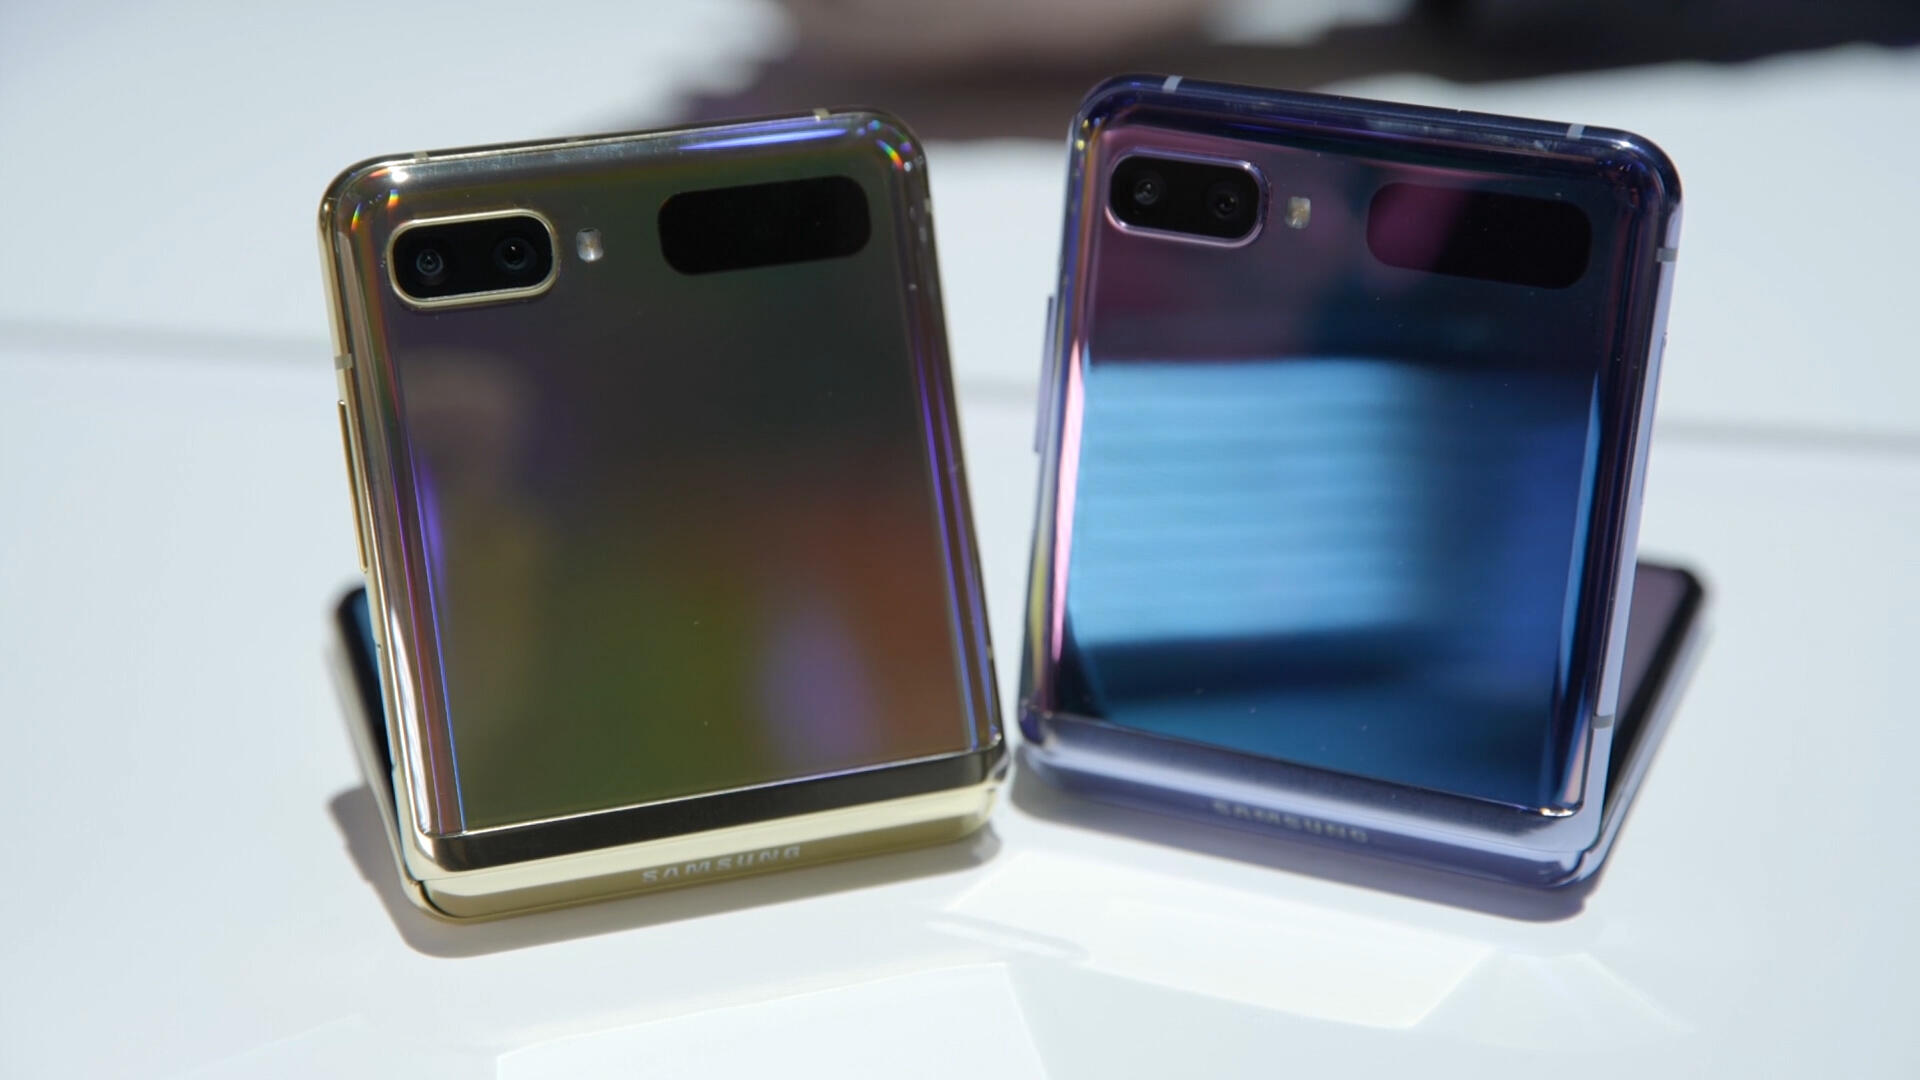 Video: Top 5 questions about Samsung's Galaxy Z Flip